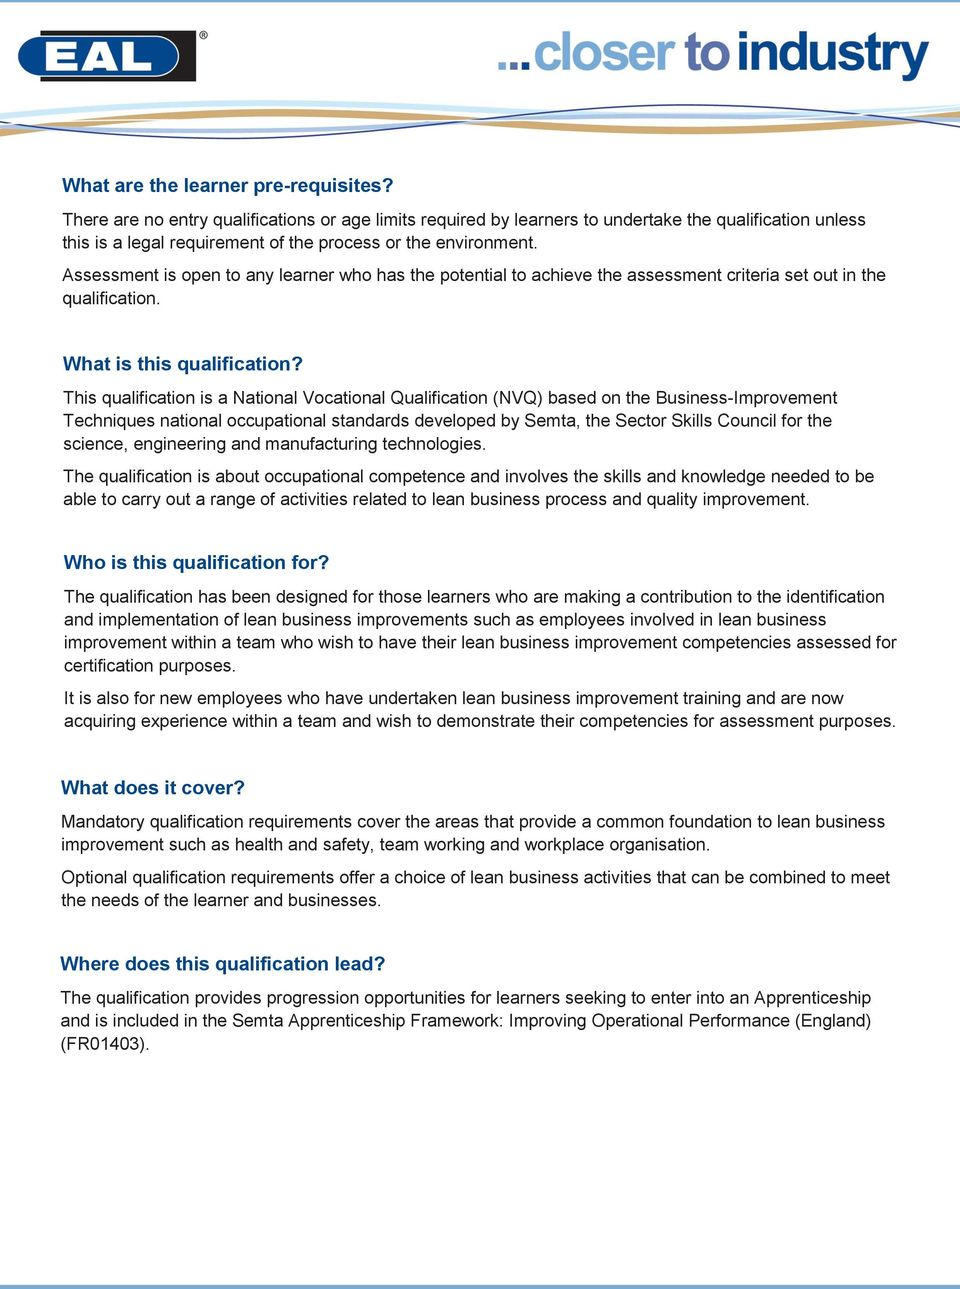 Assessment is open to any learner who has the potential to achieve the assessment criteria set out in the qualification. What is this qualification?